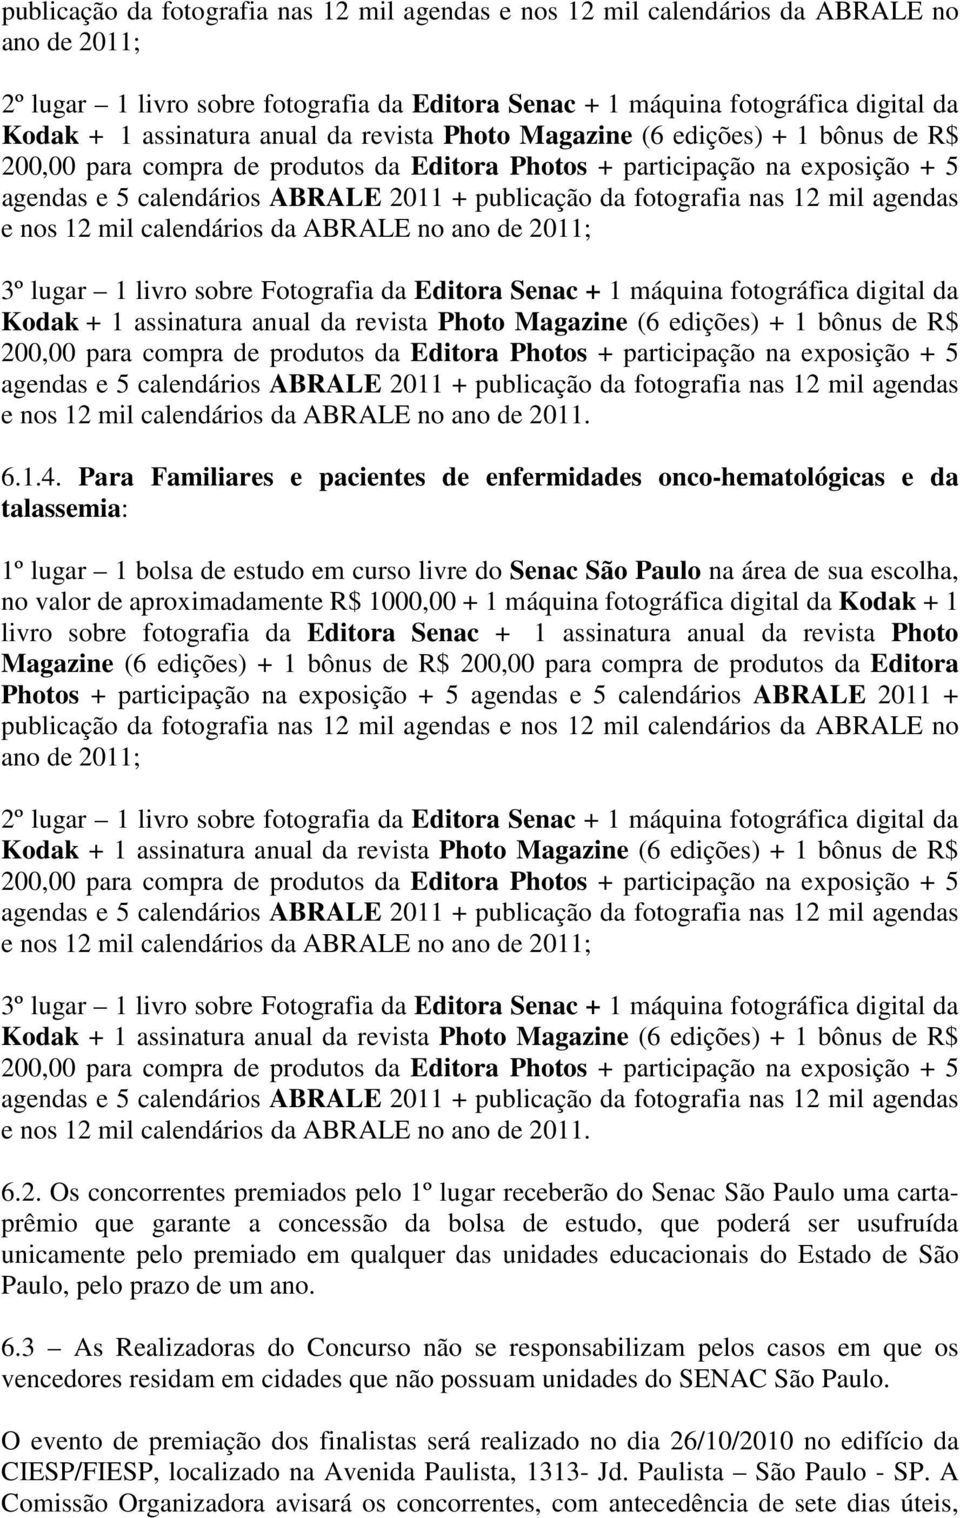 Senac + 1 assinatura anual da revista Photo e nos 12